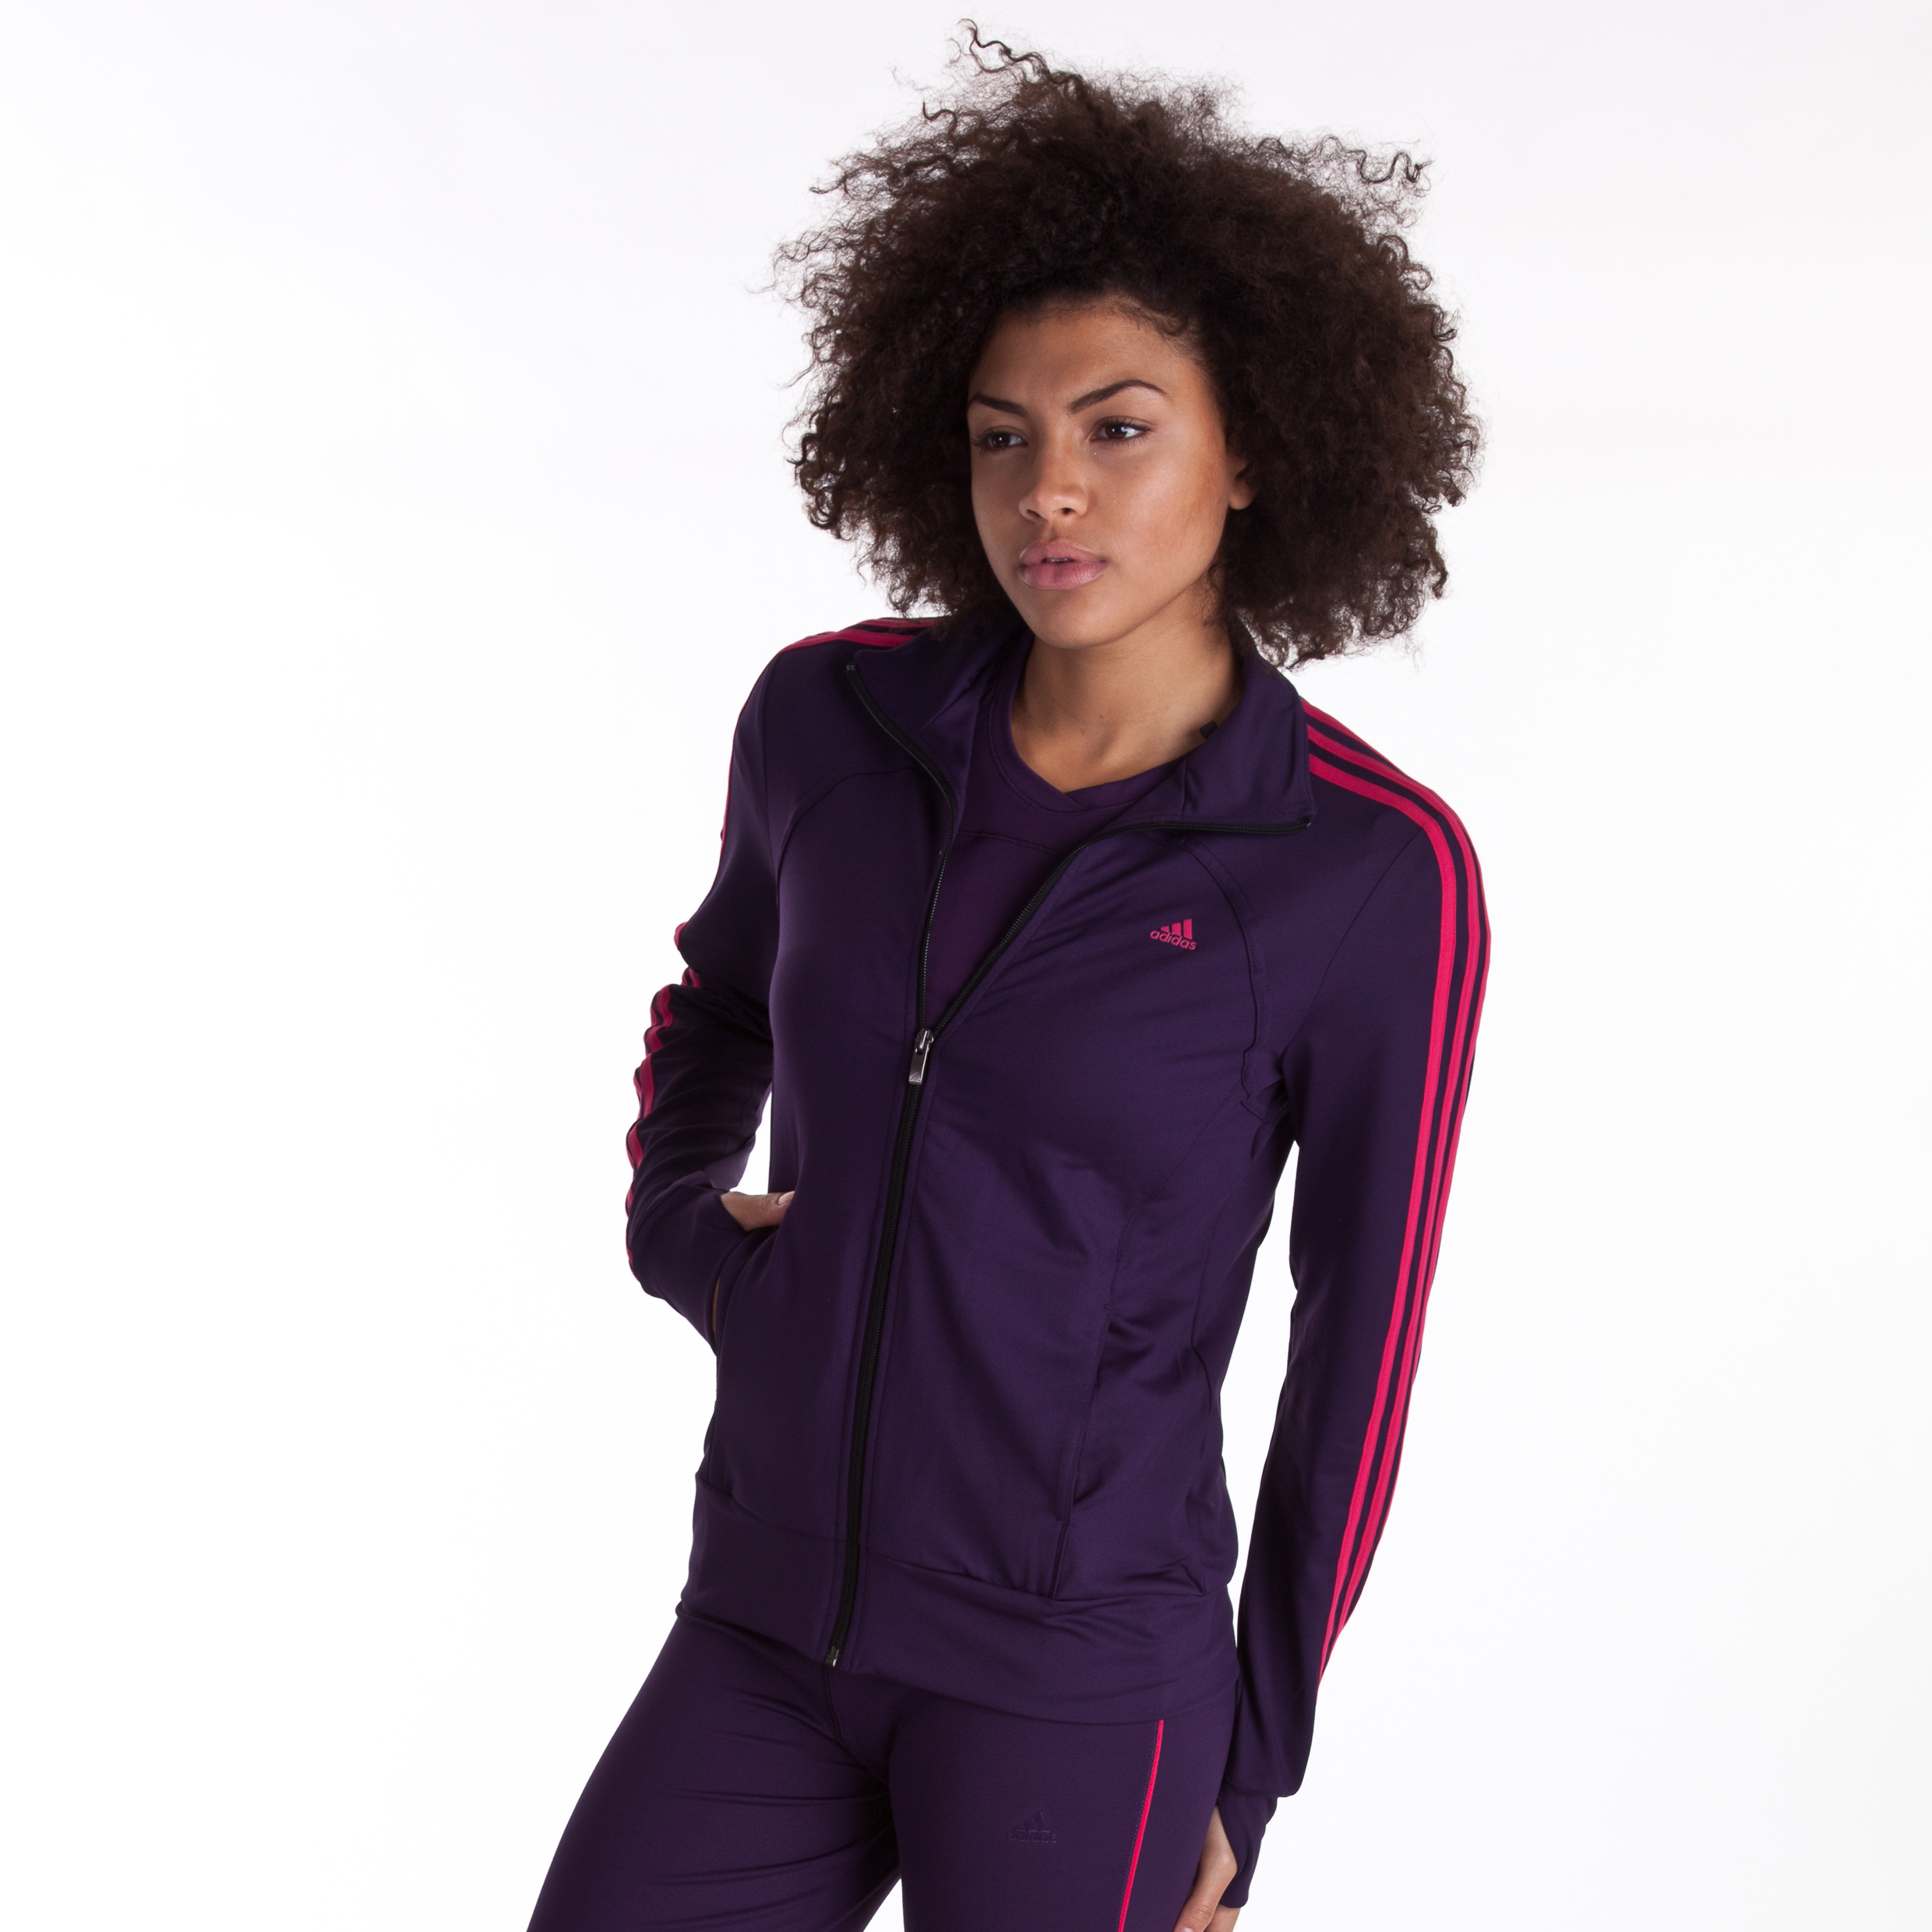 Adidas Multifunctional Essentials 3 Stripe Track Top - Dark Violet/Pink - Womens